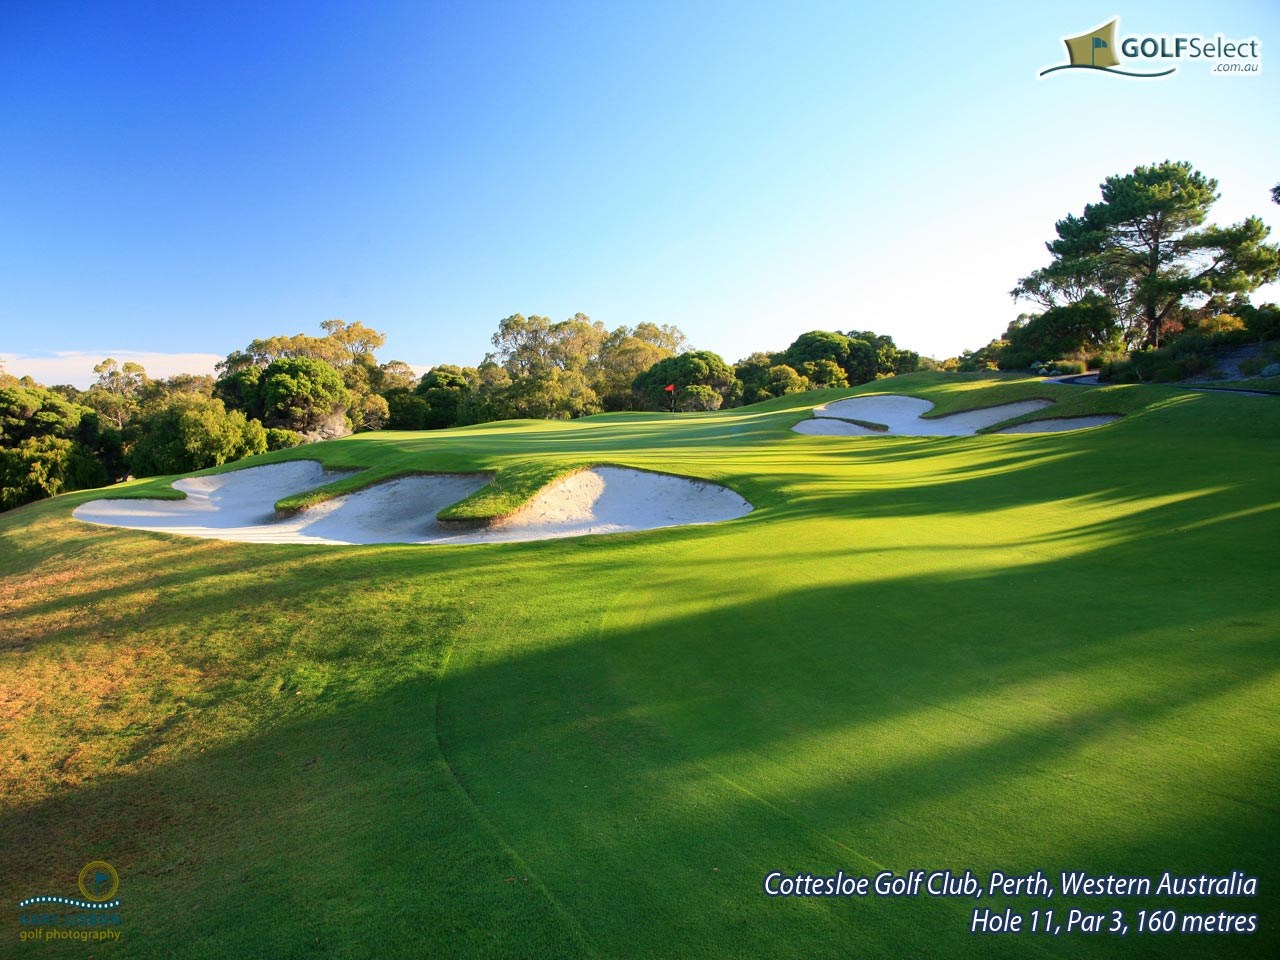 Cottesloe Golf Club Hole 11, Par 3, 148 metres